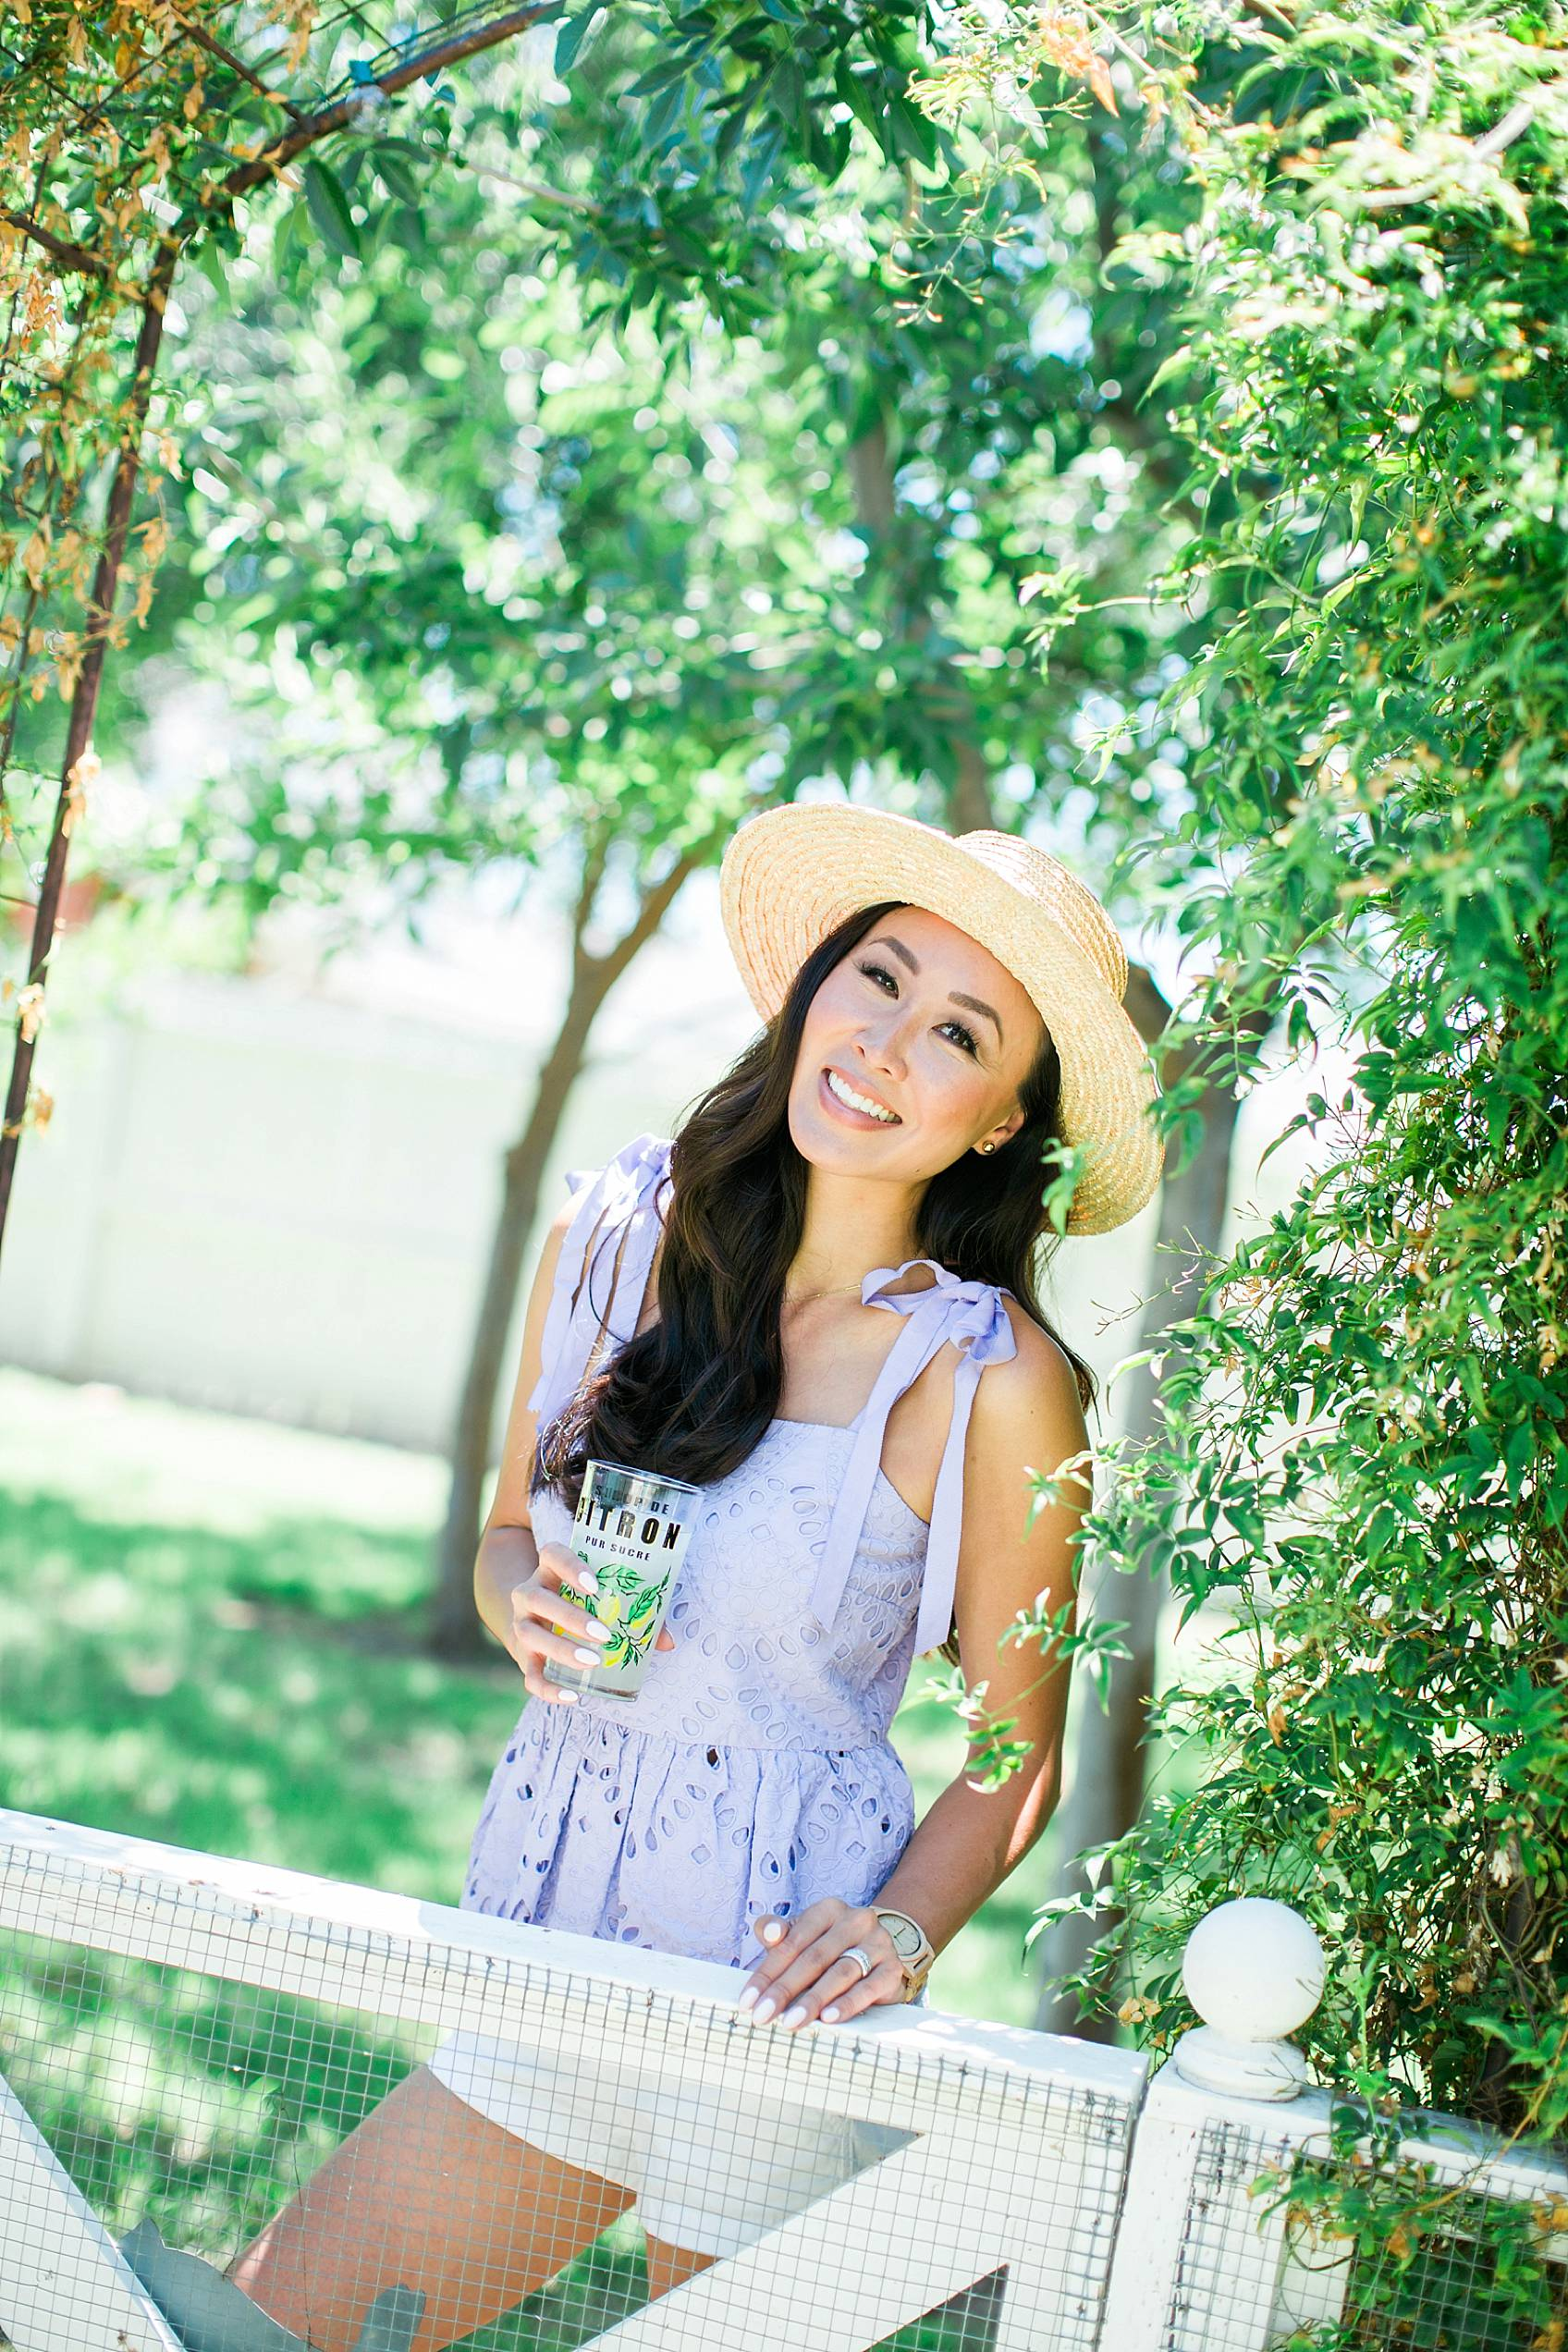 Lifestyle blogger diana elizabeth in purple eyelet top by j.crew in backyard jasmine vine wall holding glass of lemonade